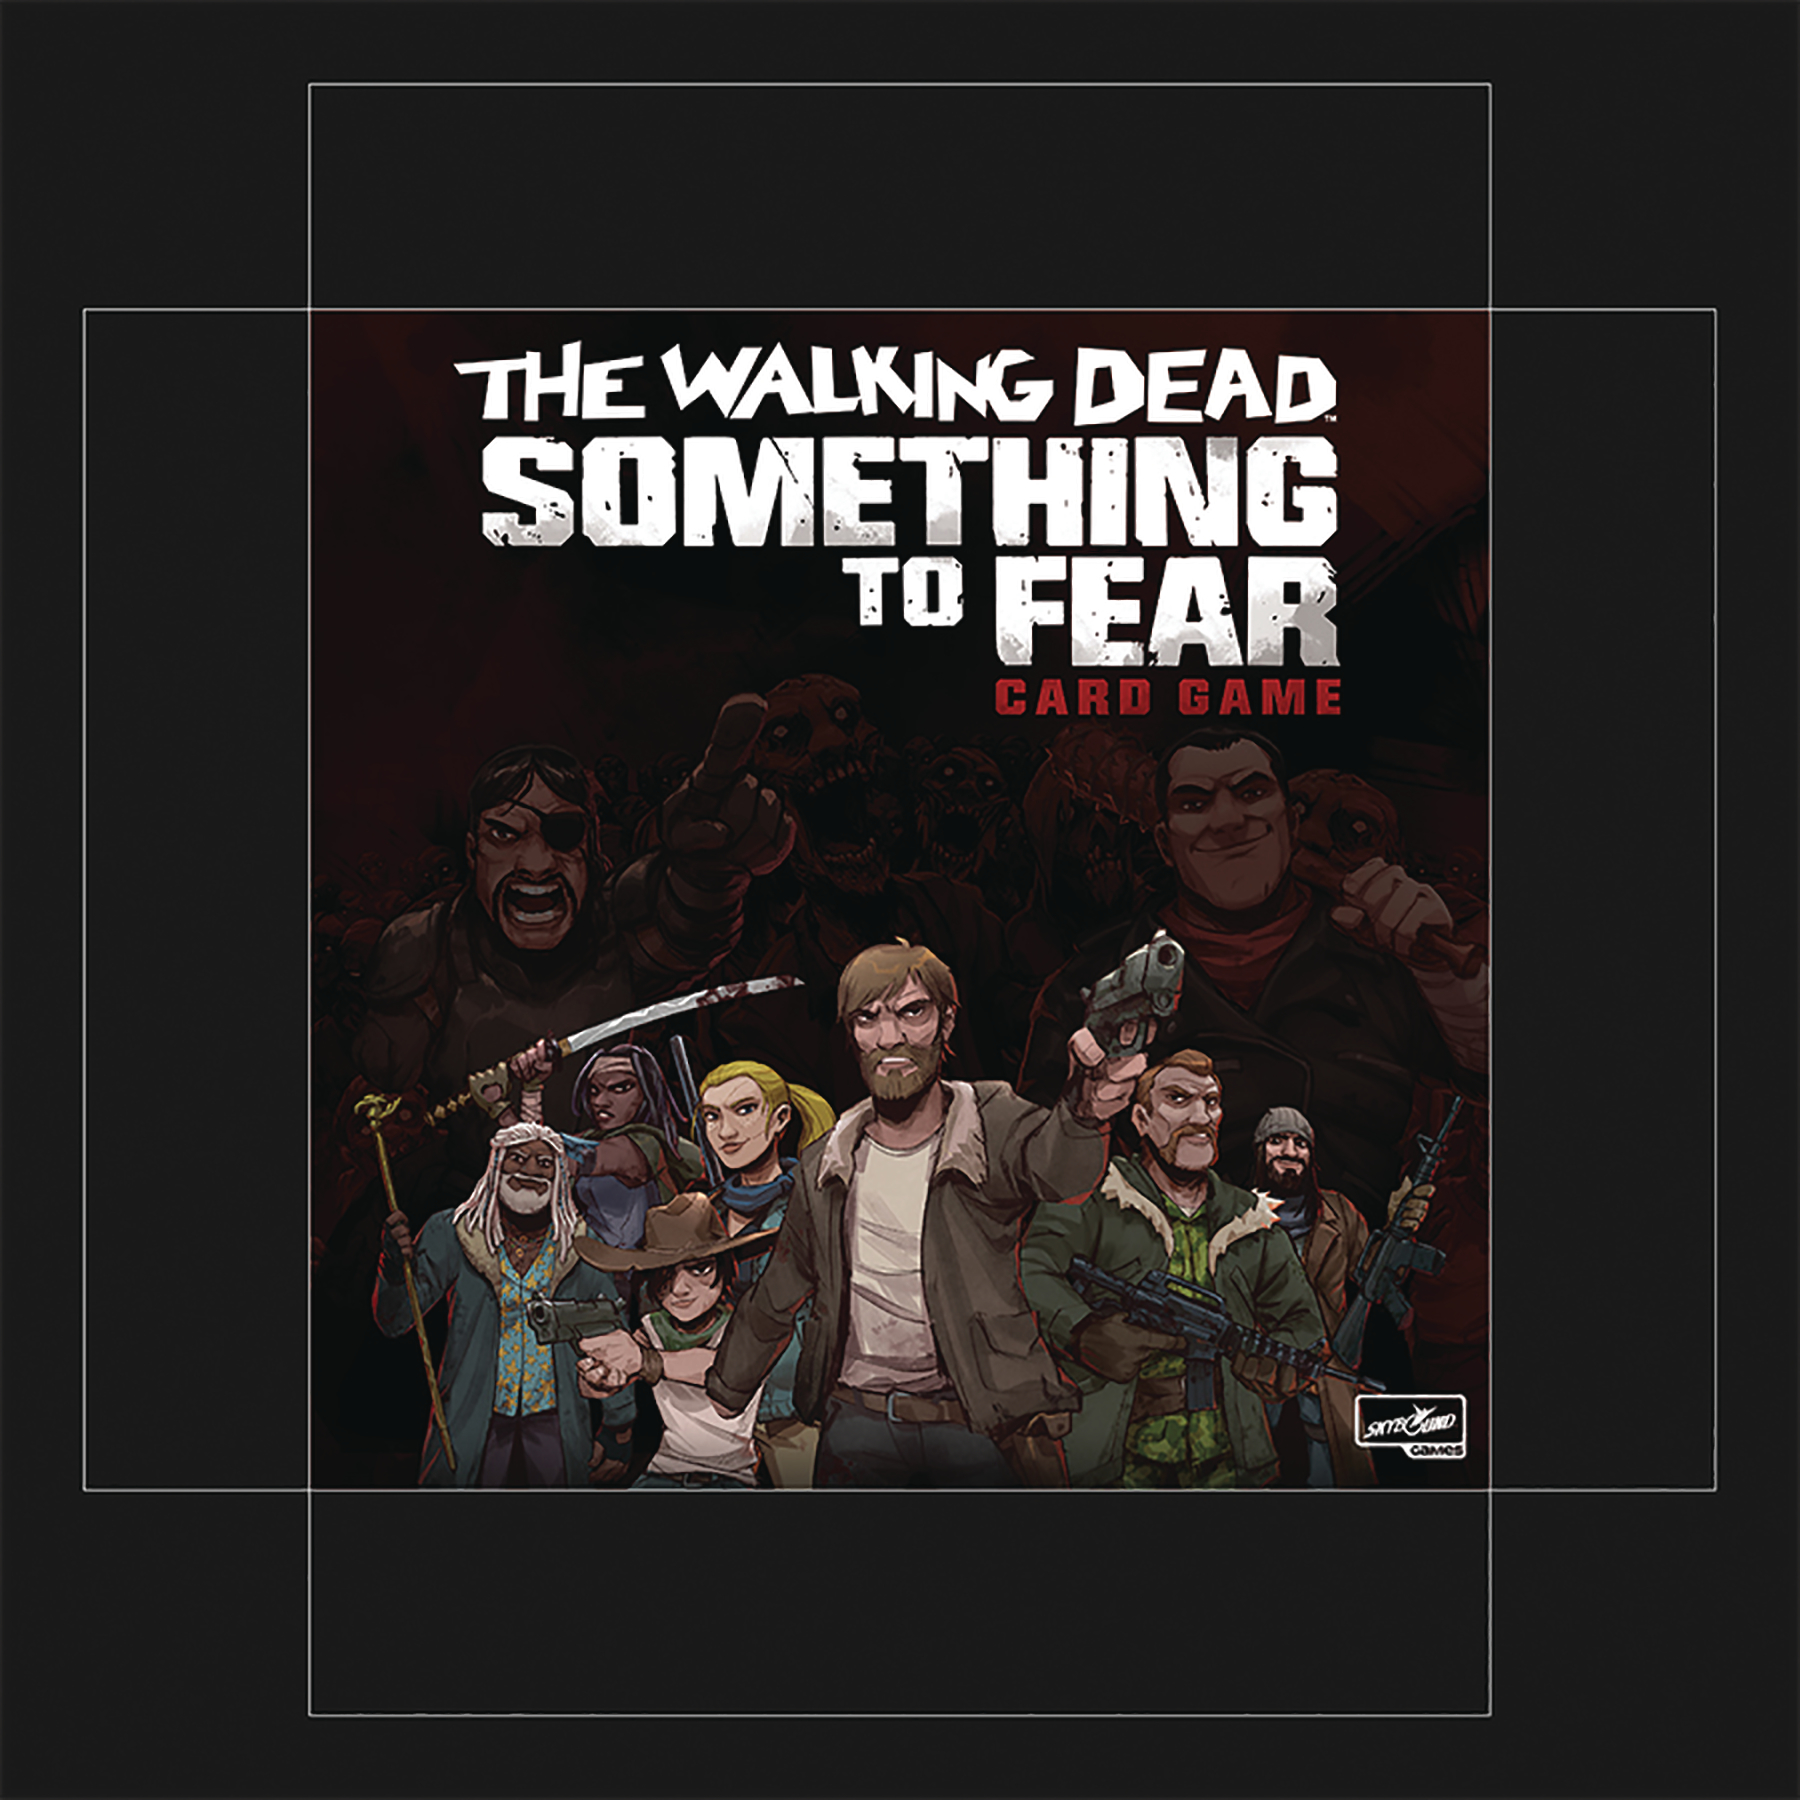 WALKING DEAD SOMETHING TO FEAR CARD GAME